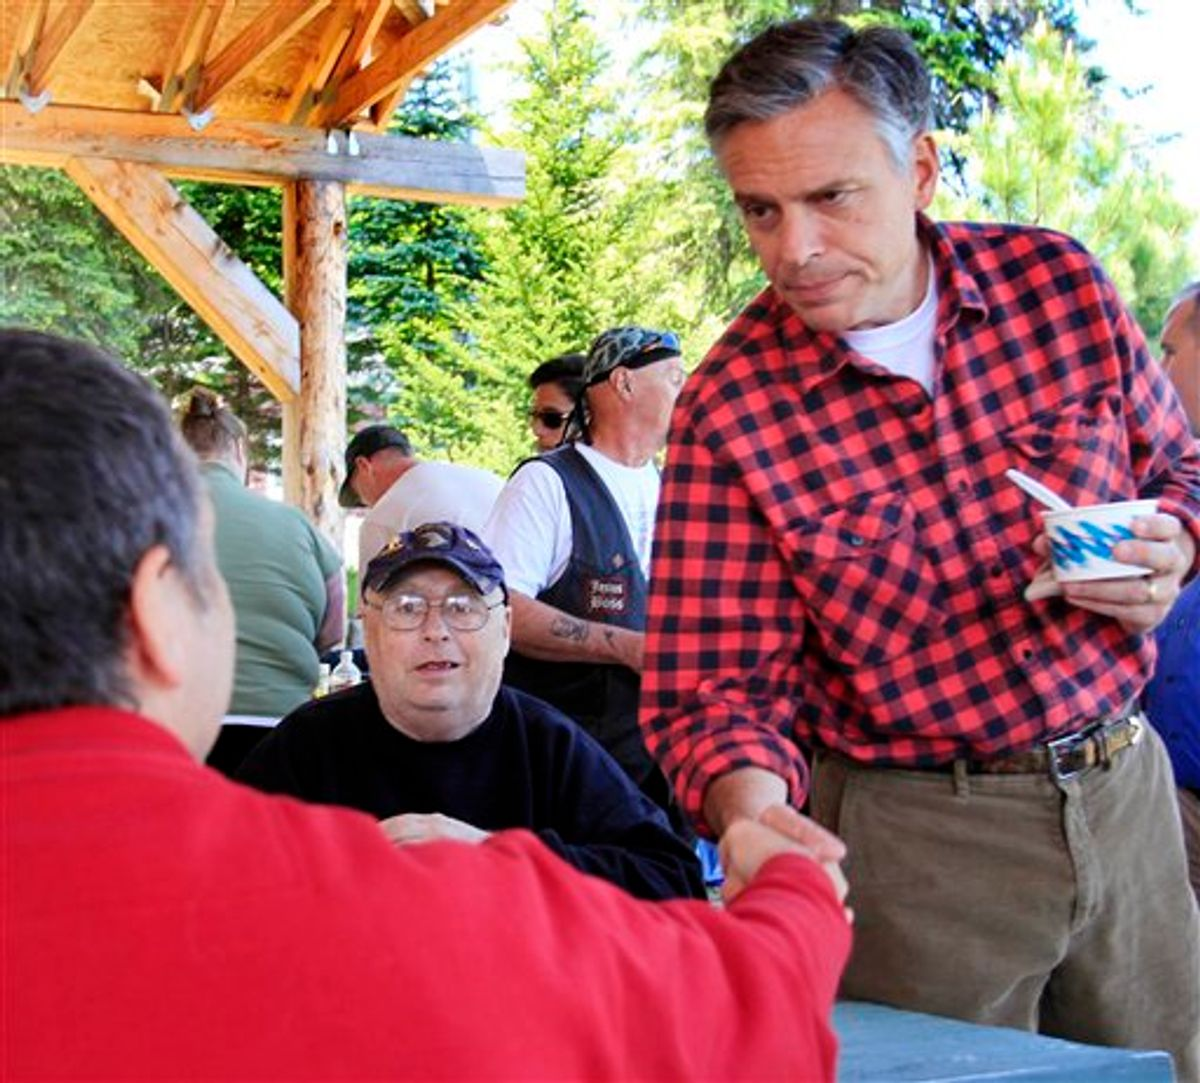 With his wife Mary Kaye at his side possible 2012 presidential hopeful, former Republican Gov. Jon Huntsman, Jr., of Utah shakes hands during a cultural festival at Heritage Park, Saturday, June 4, 2011 in Berlin, N.H. (AP Photo/Jim Cole) (AP)